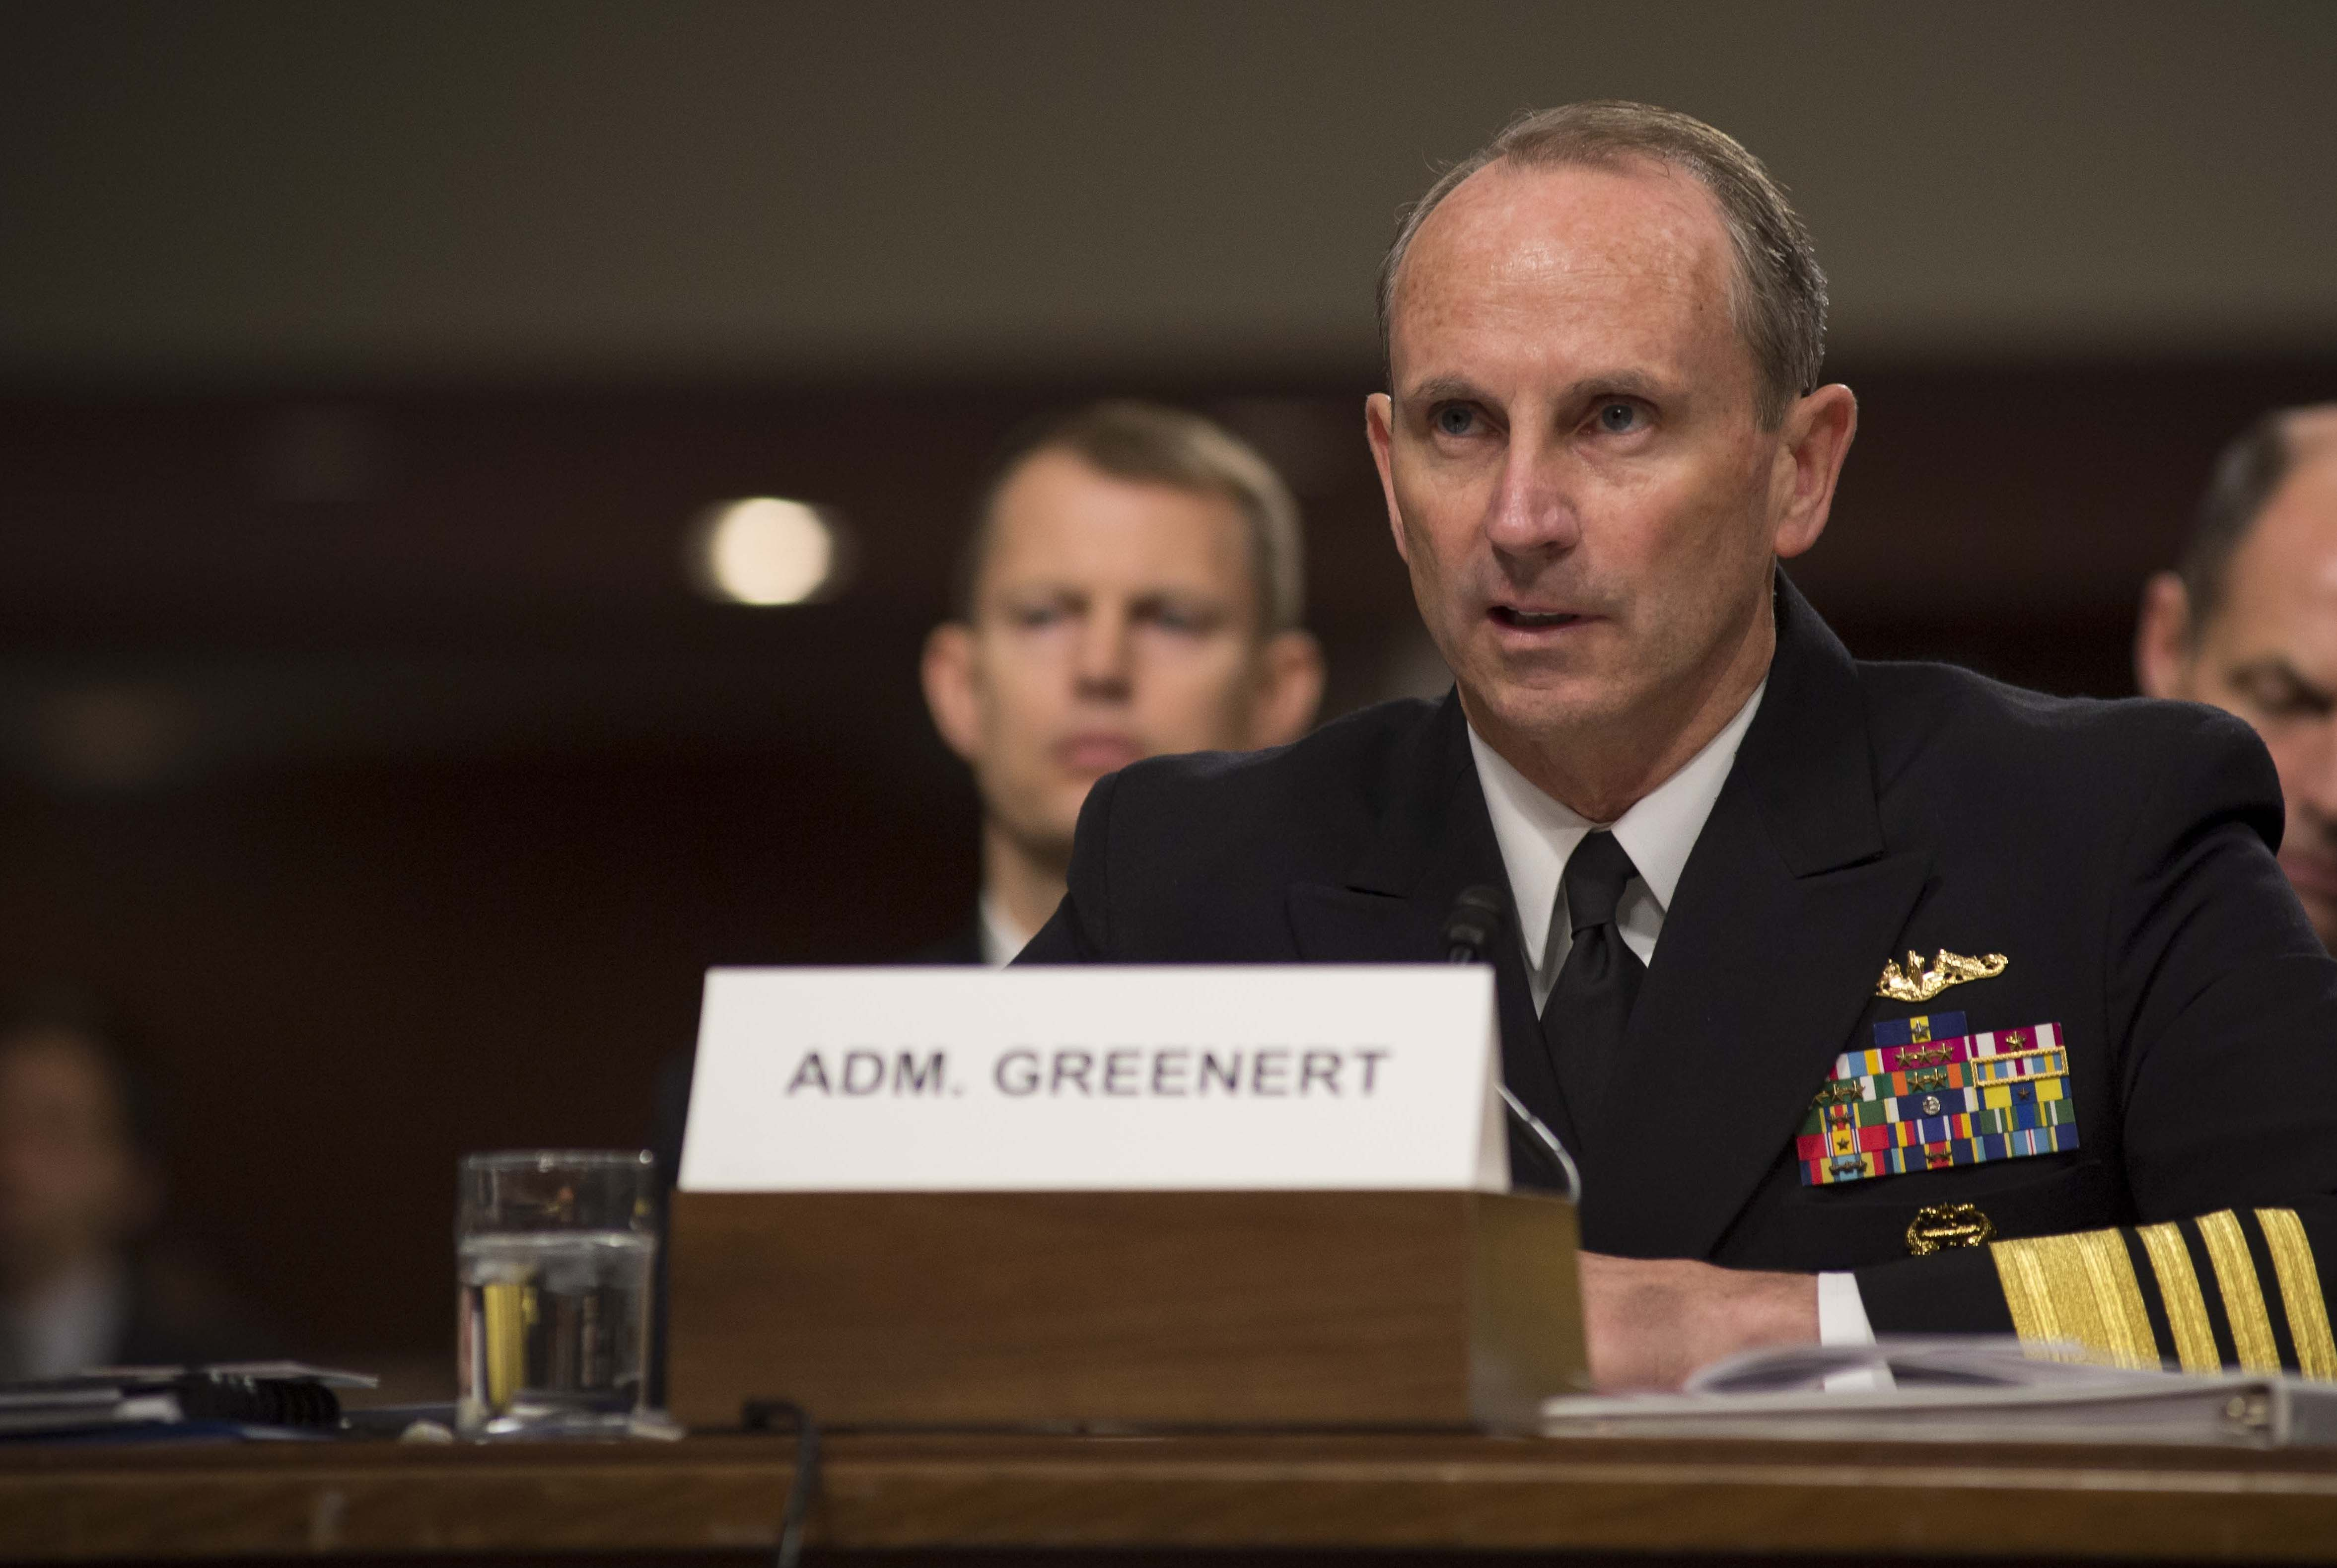 Chief of Naval Operations (CNO) Adm. Jonathan Greenert testifies during a posture hearing before the Senate Armed Services Committee on March, 27 2014. US Navy Photo